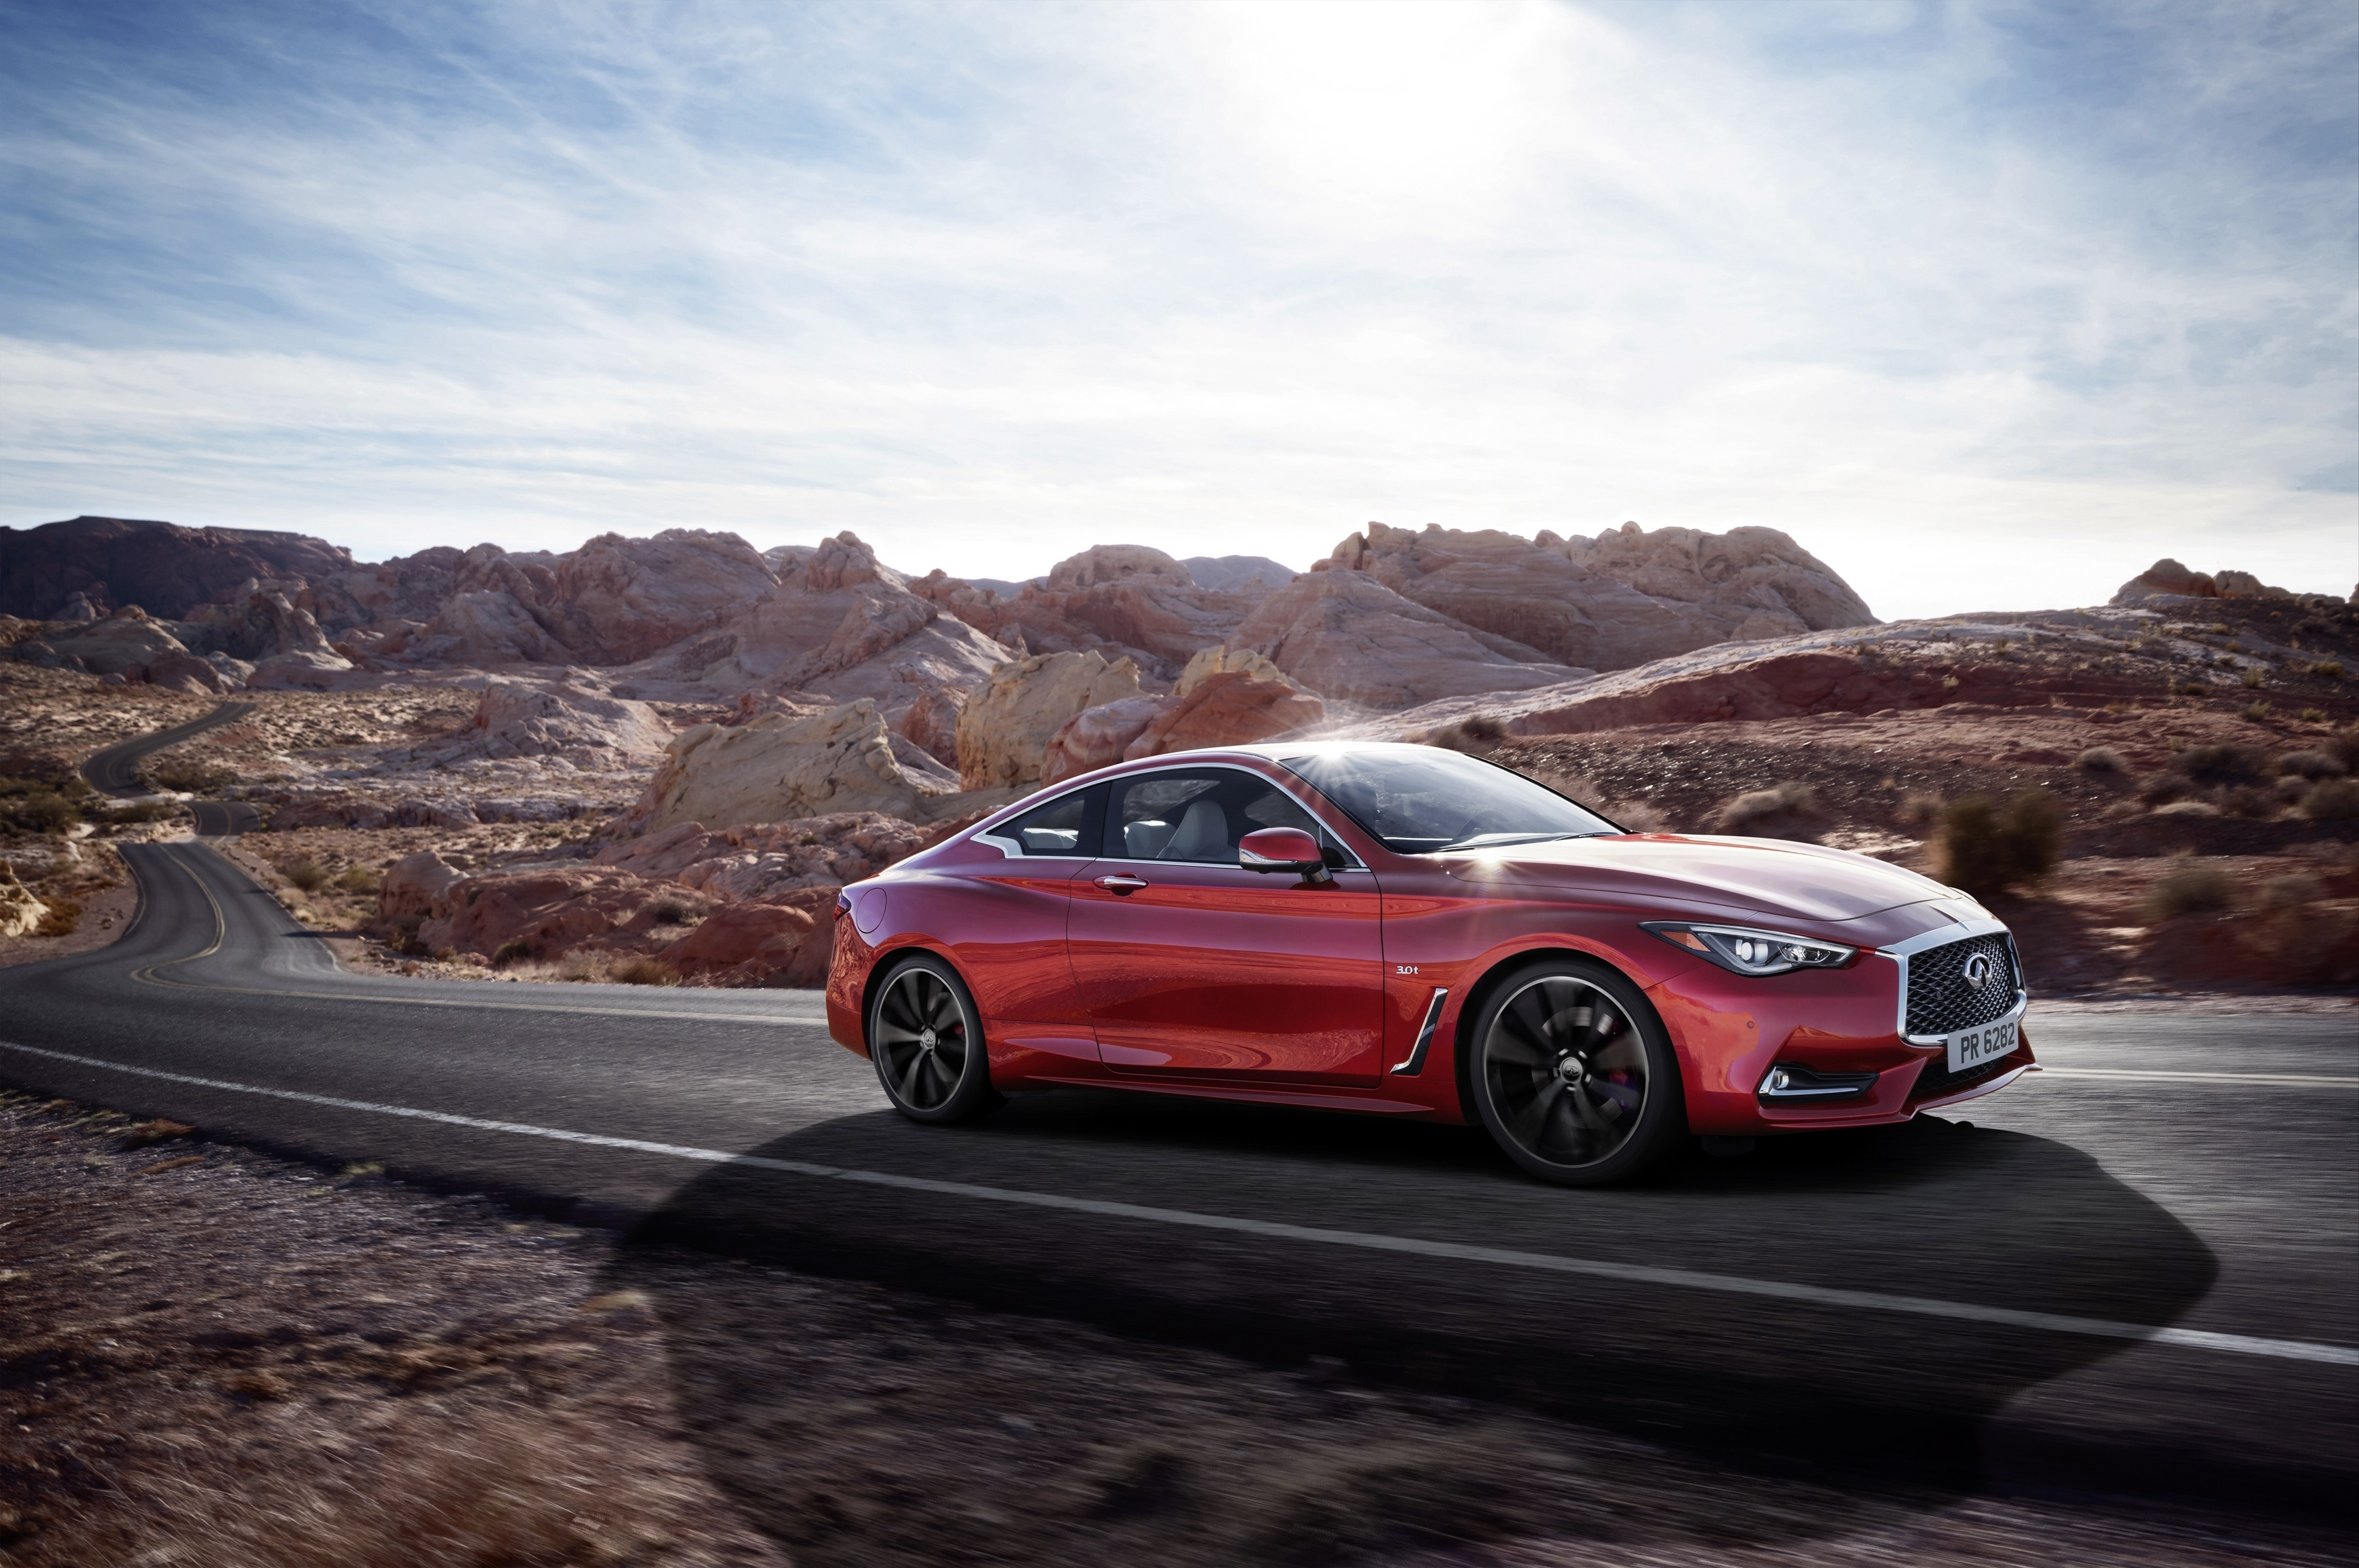 "Used Infiniti Q60 >> Jon Snow Quotes ""The Tyger"" in Dramatic Infiniti Q60 Commercial - autoevolution"